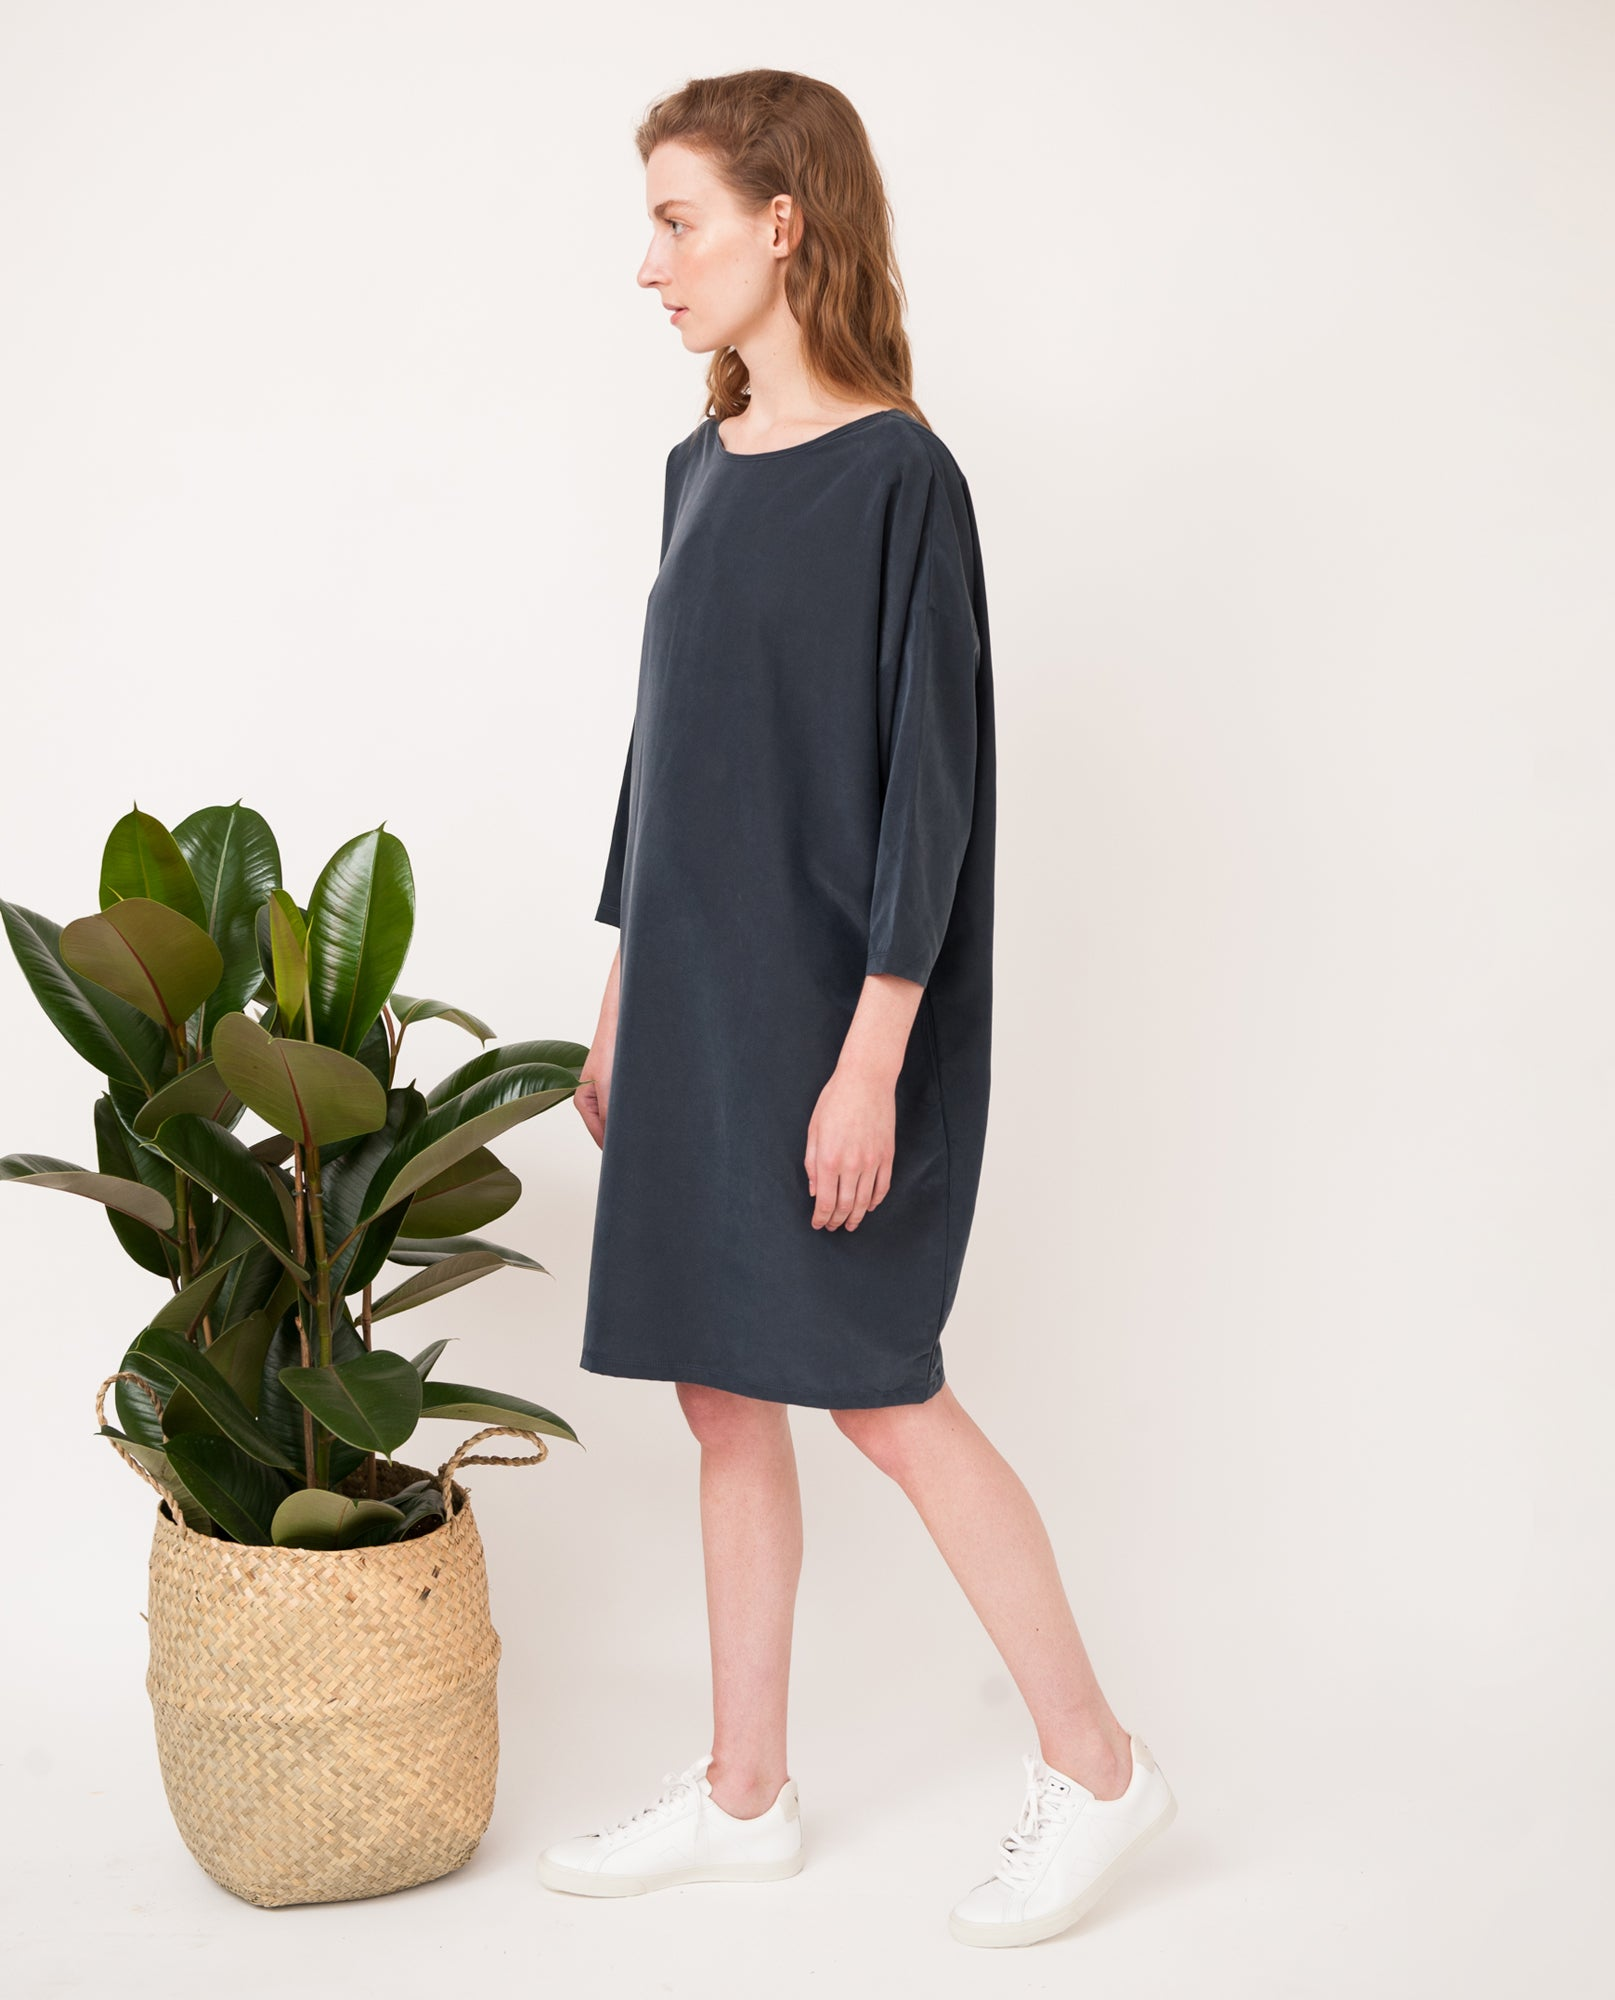 VERA-MAY Modal Dress In Navy